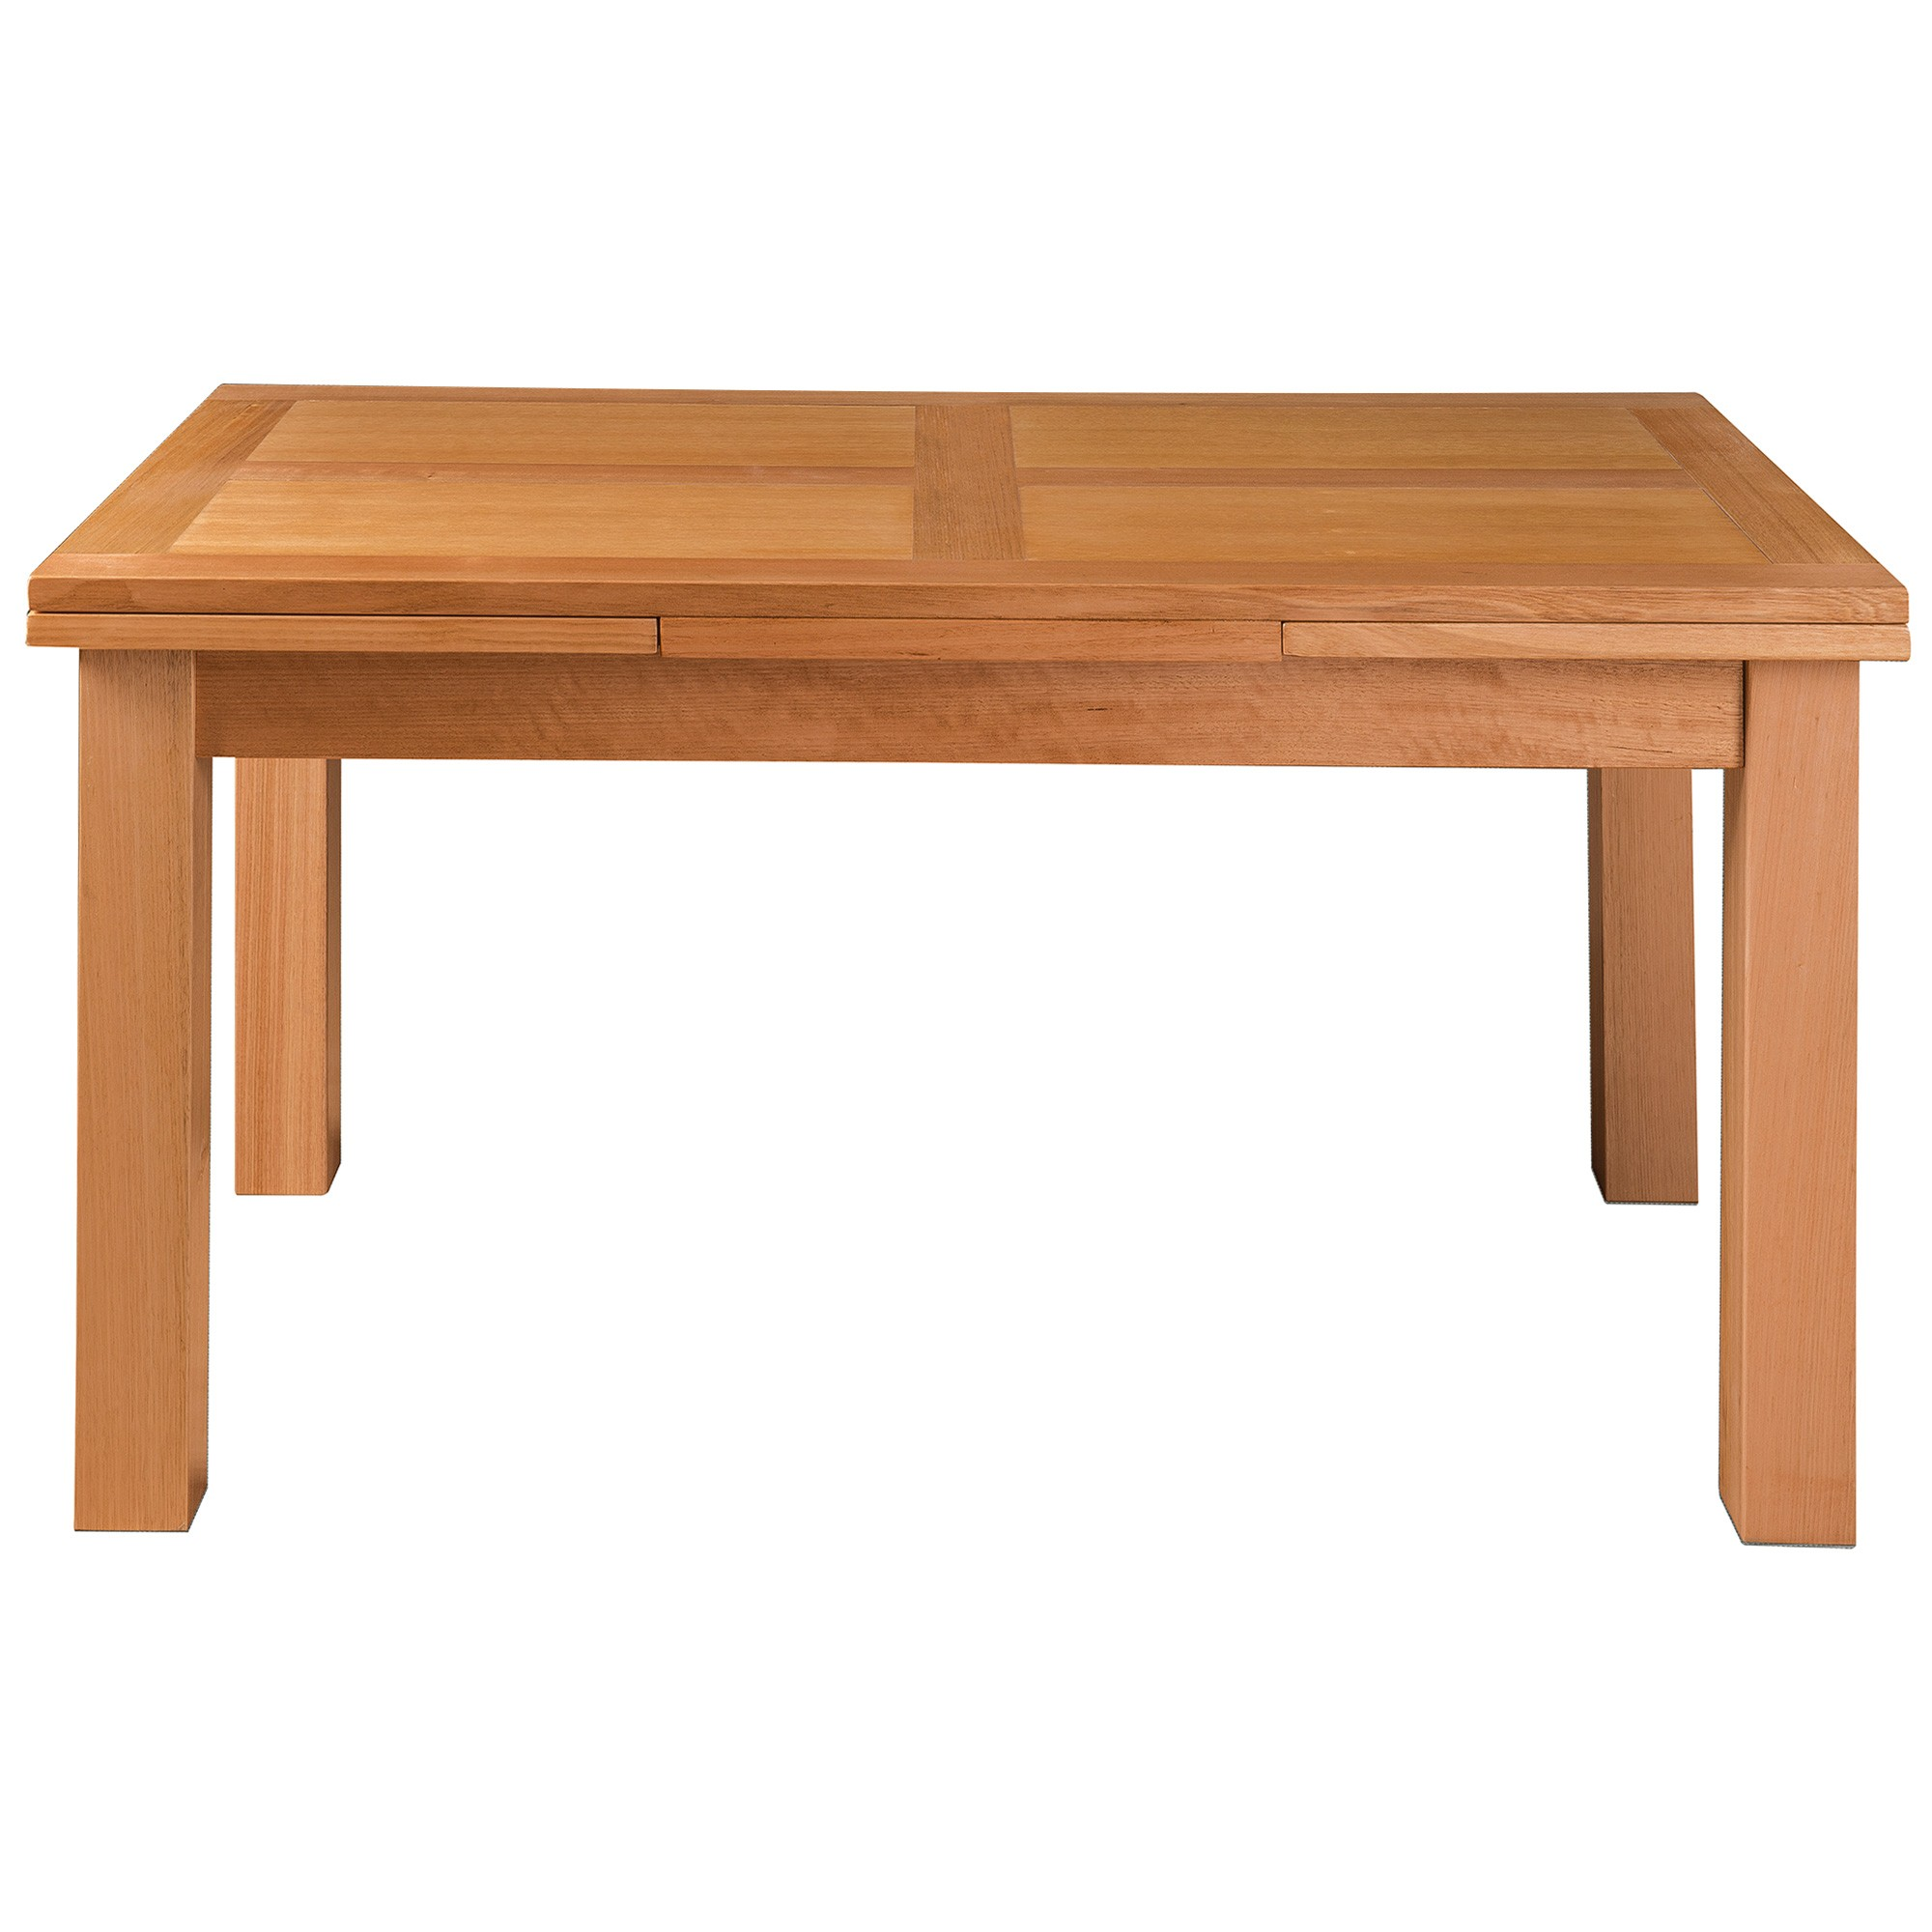 Moselia II Tasmanian Oak Timber Ends Extension Dining Table, 200-300cm, Wheat